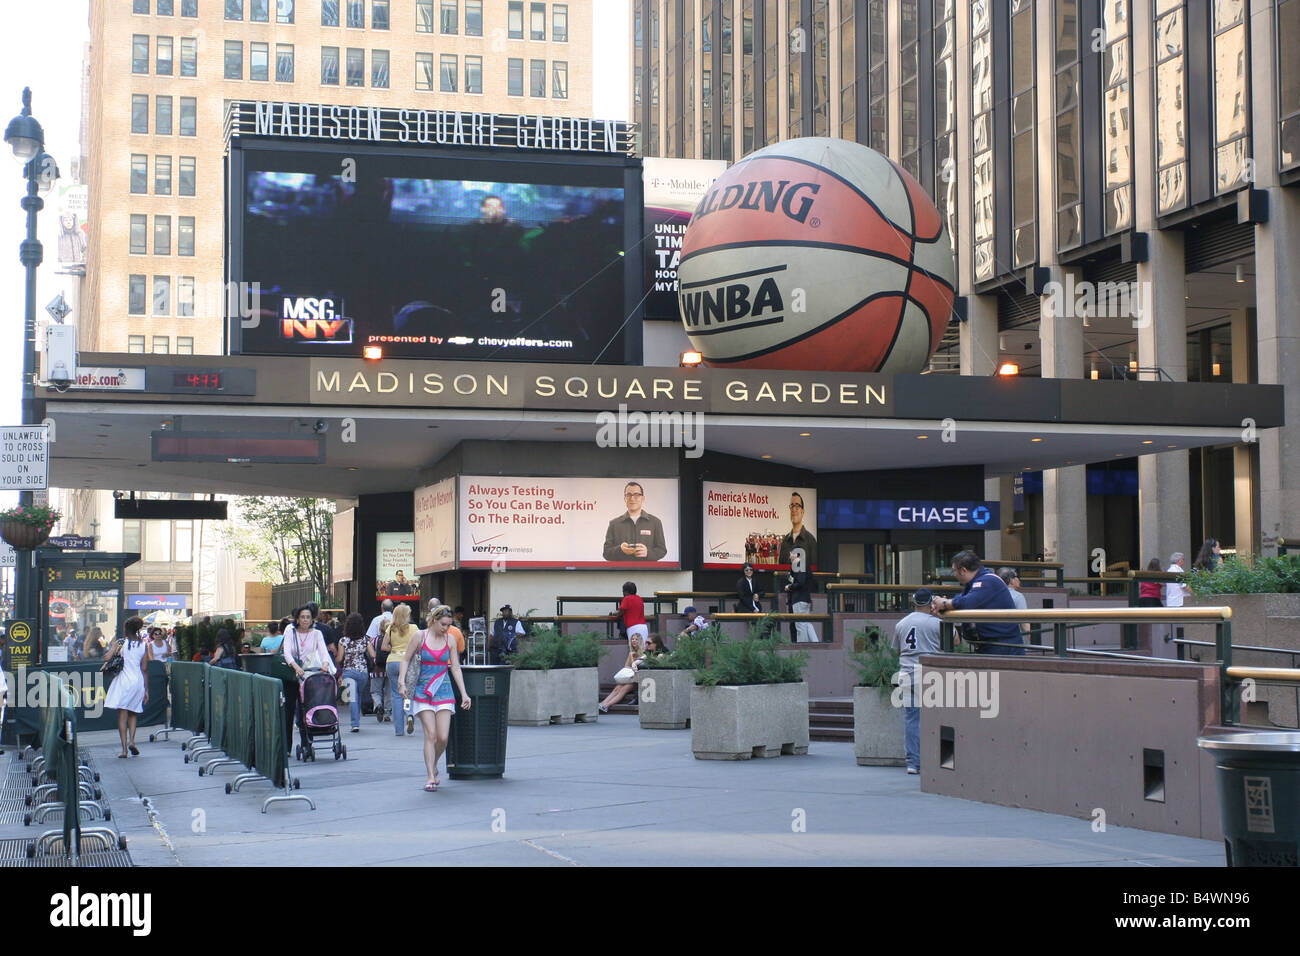 Madison Square Garden Main Entrance On 7th Ave Stock Photo Royalty Free Image 20234514 Alamy